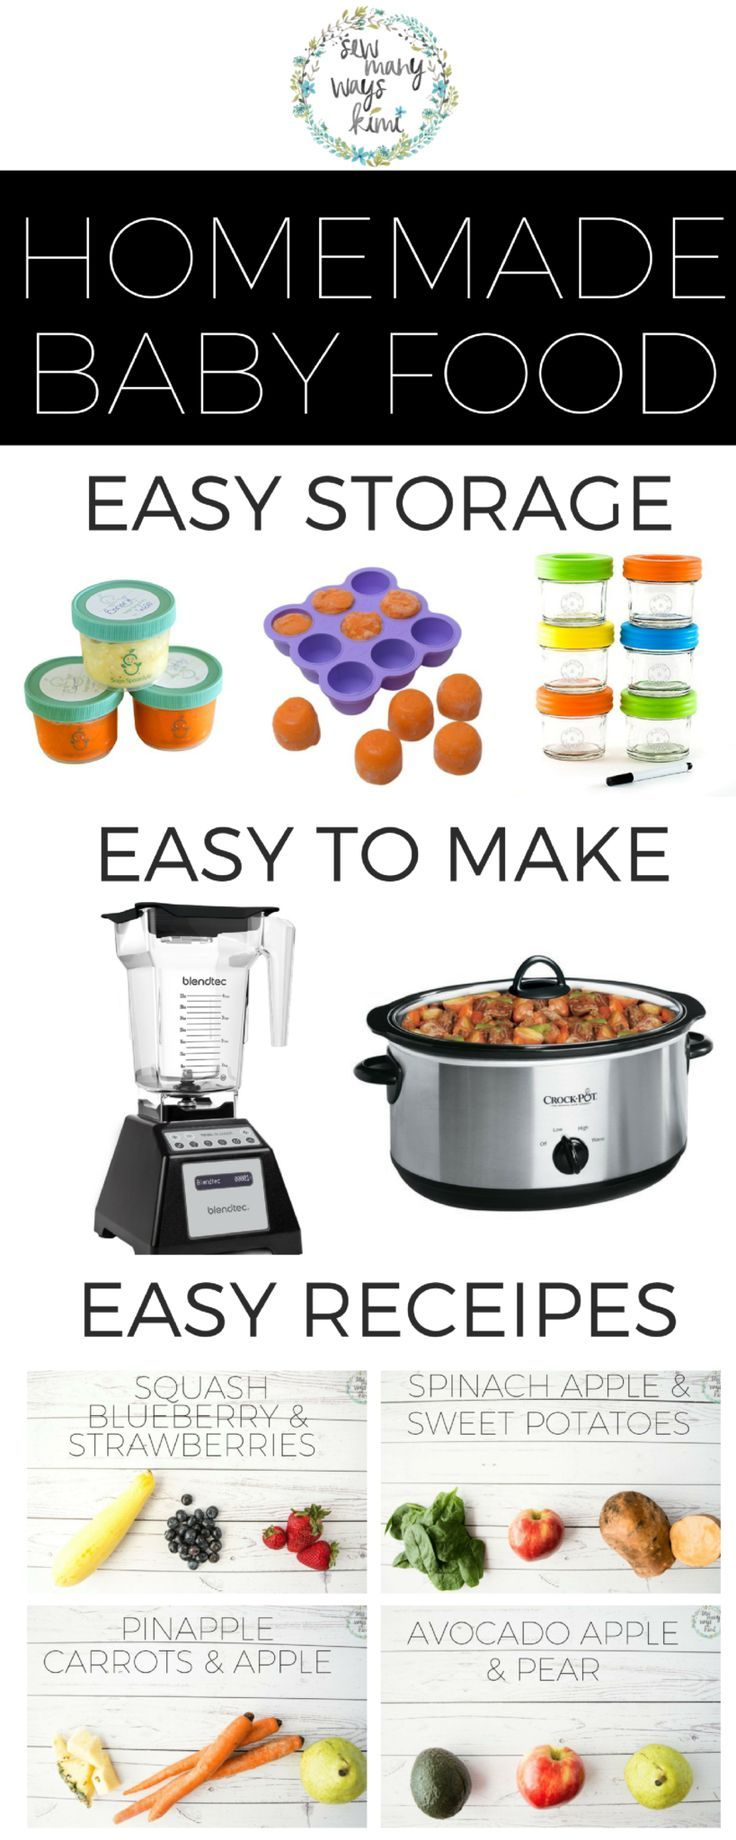 No need to buy a $200 baby food maker! Great for beginners/newbies! Just use your blender and crockpot! Includes super easy and yummy homemade baby food recipes. Store, make and feed. via /sewmanywayskimi/